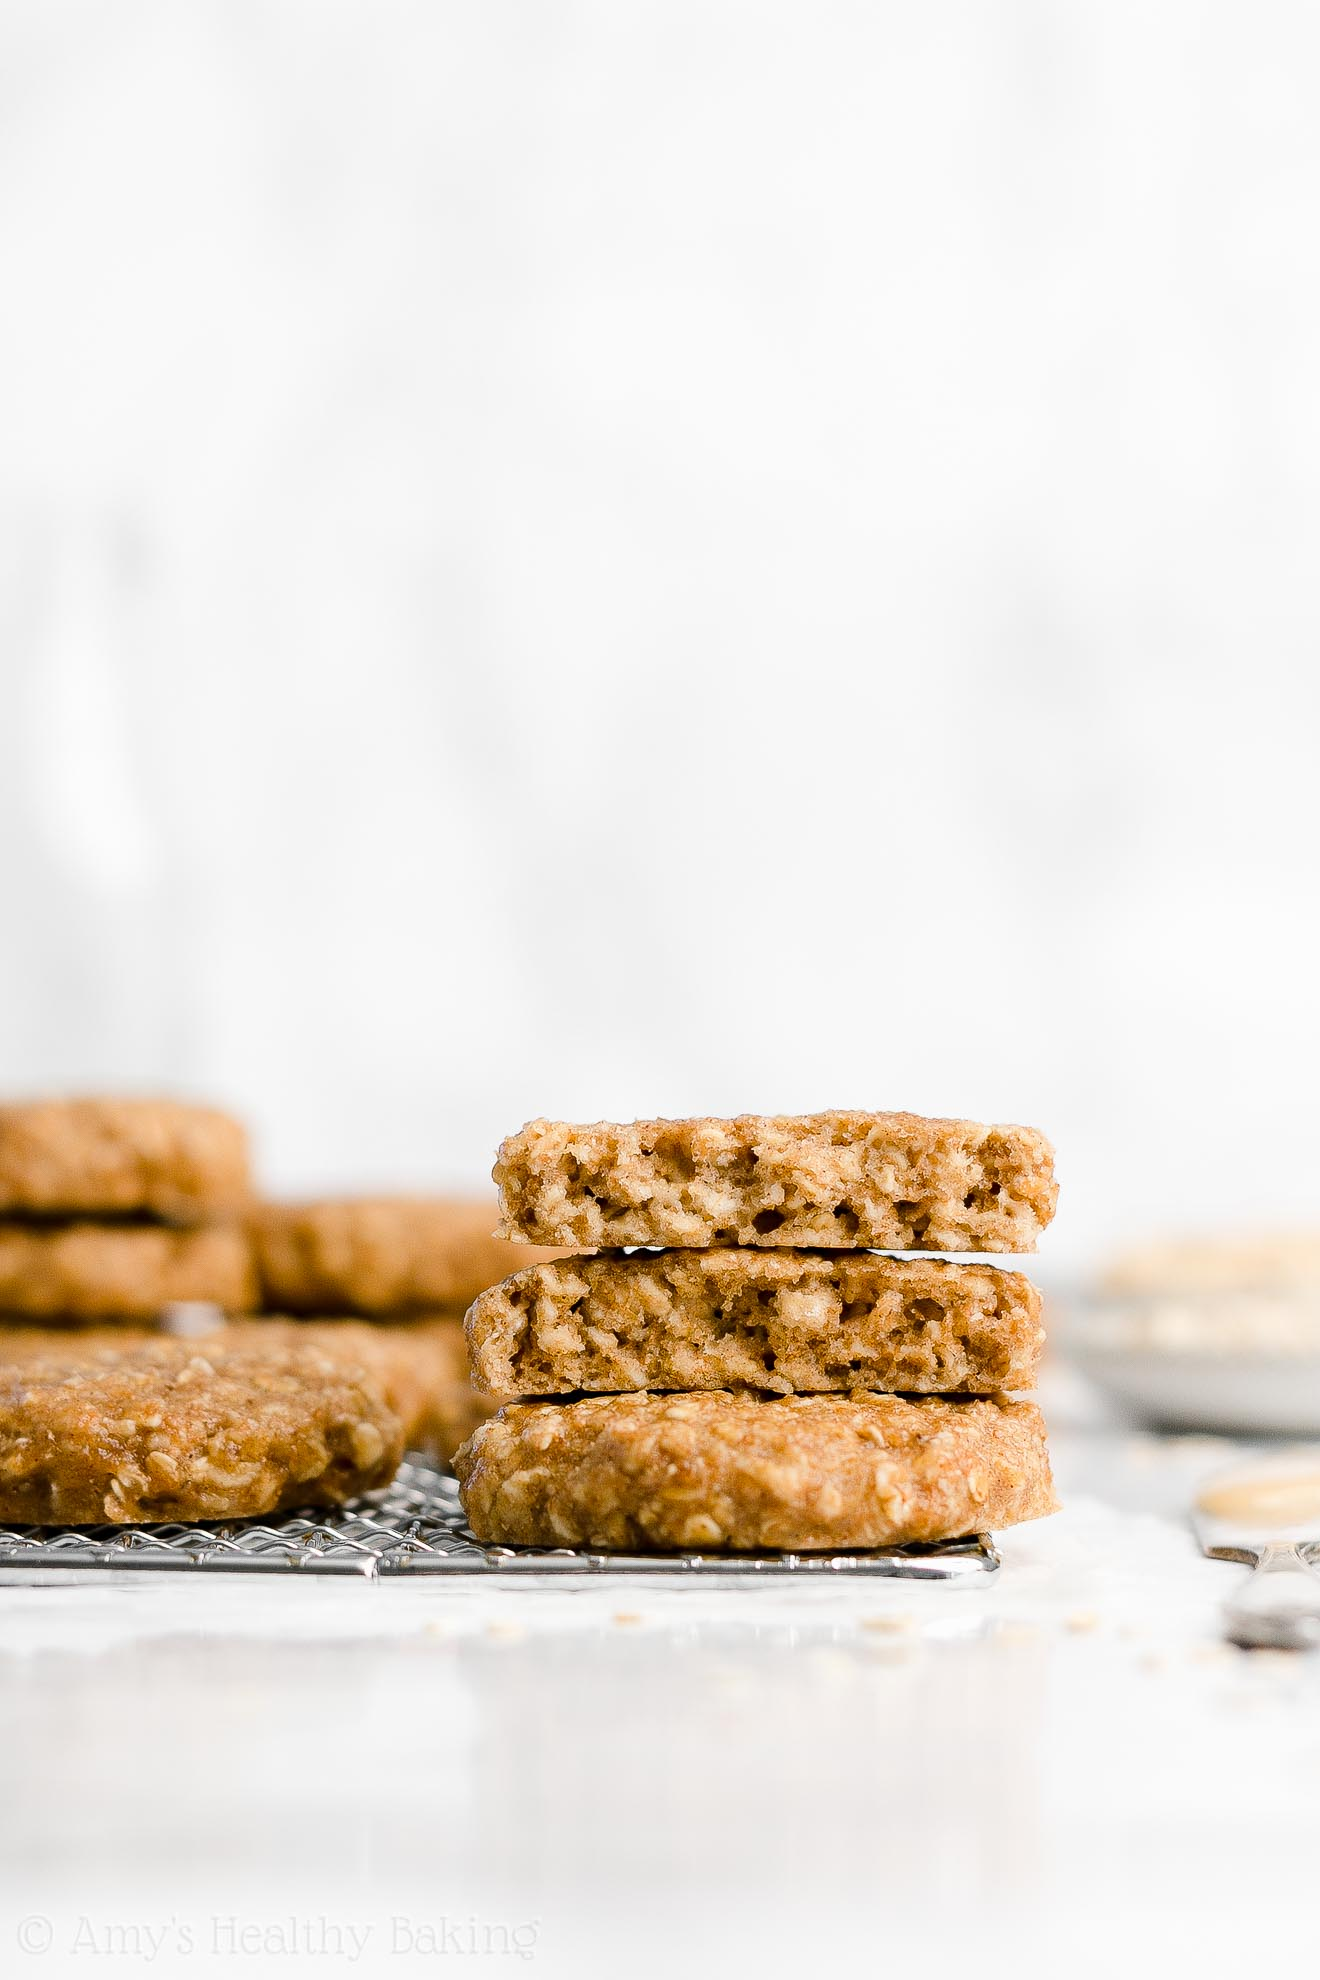 Easy Healthy Dairy Free Low Fat Peanut Butter Banana Oatmeal Breakfast Cookies